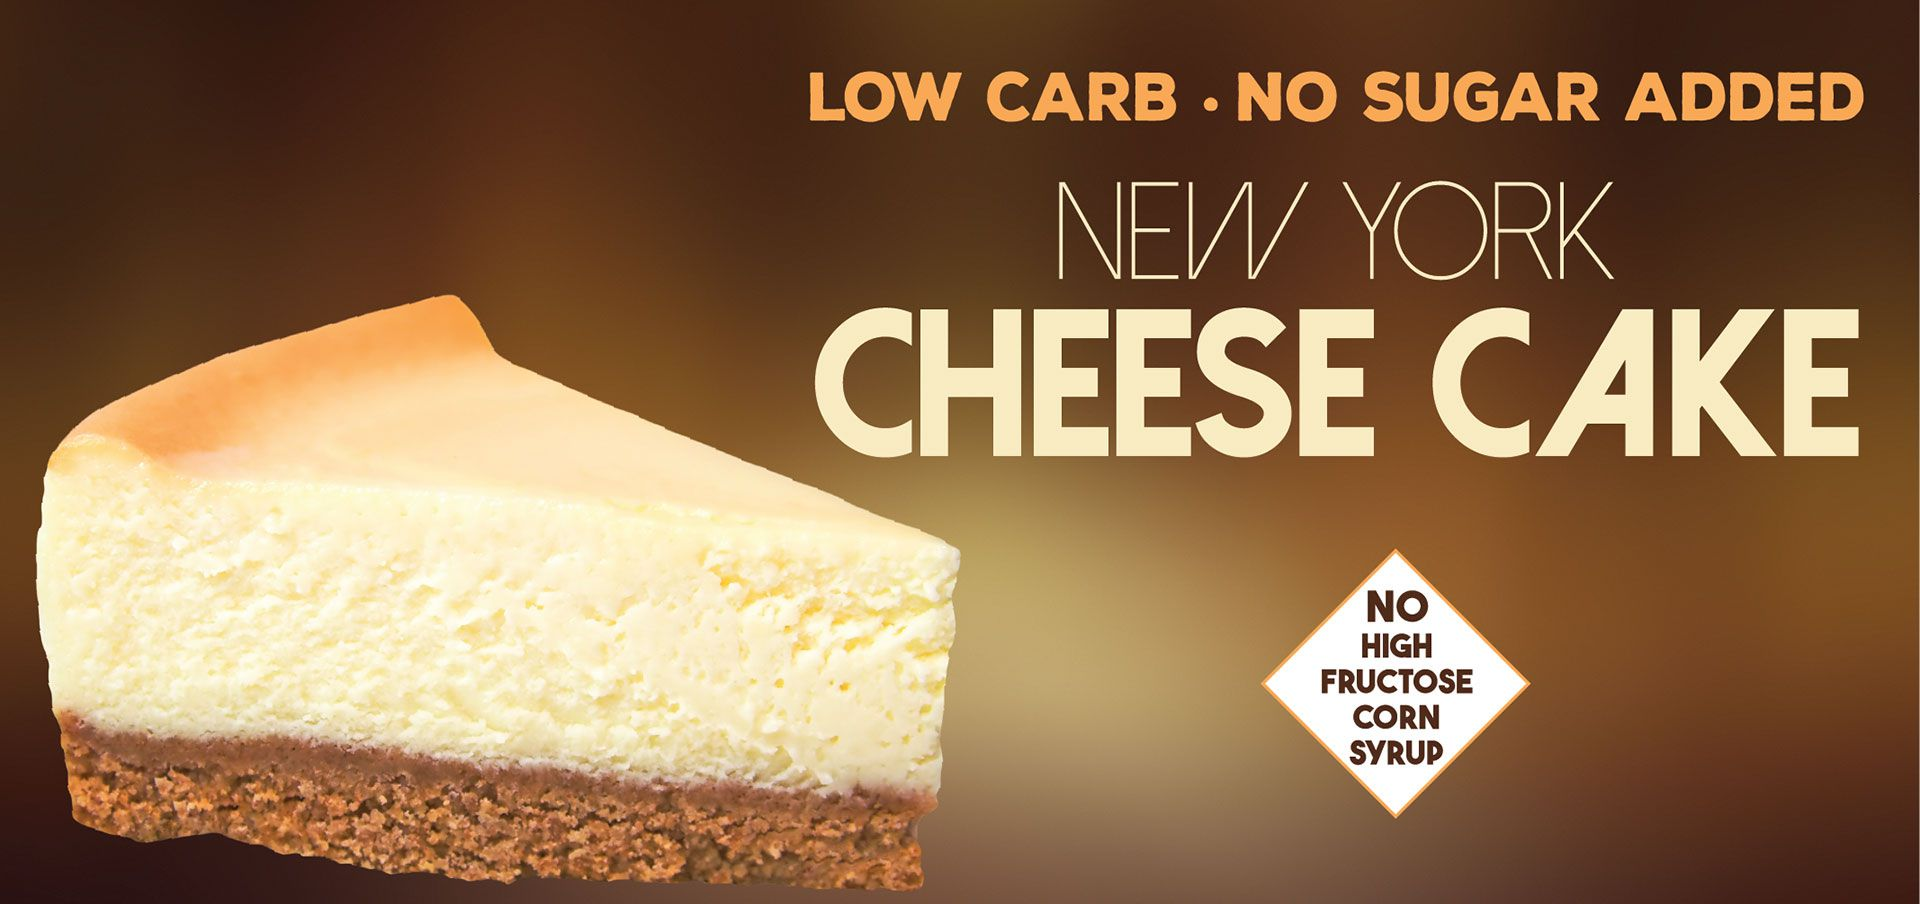 new york cheesecake label image